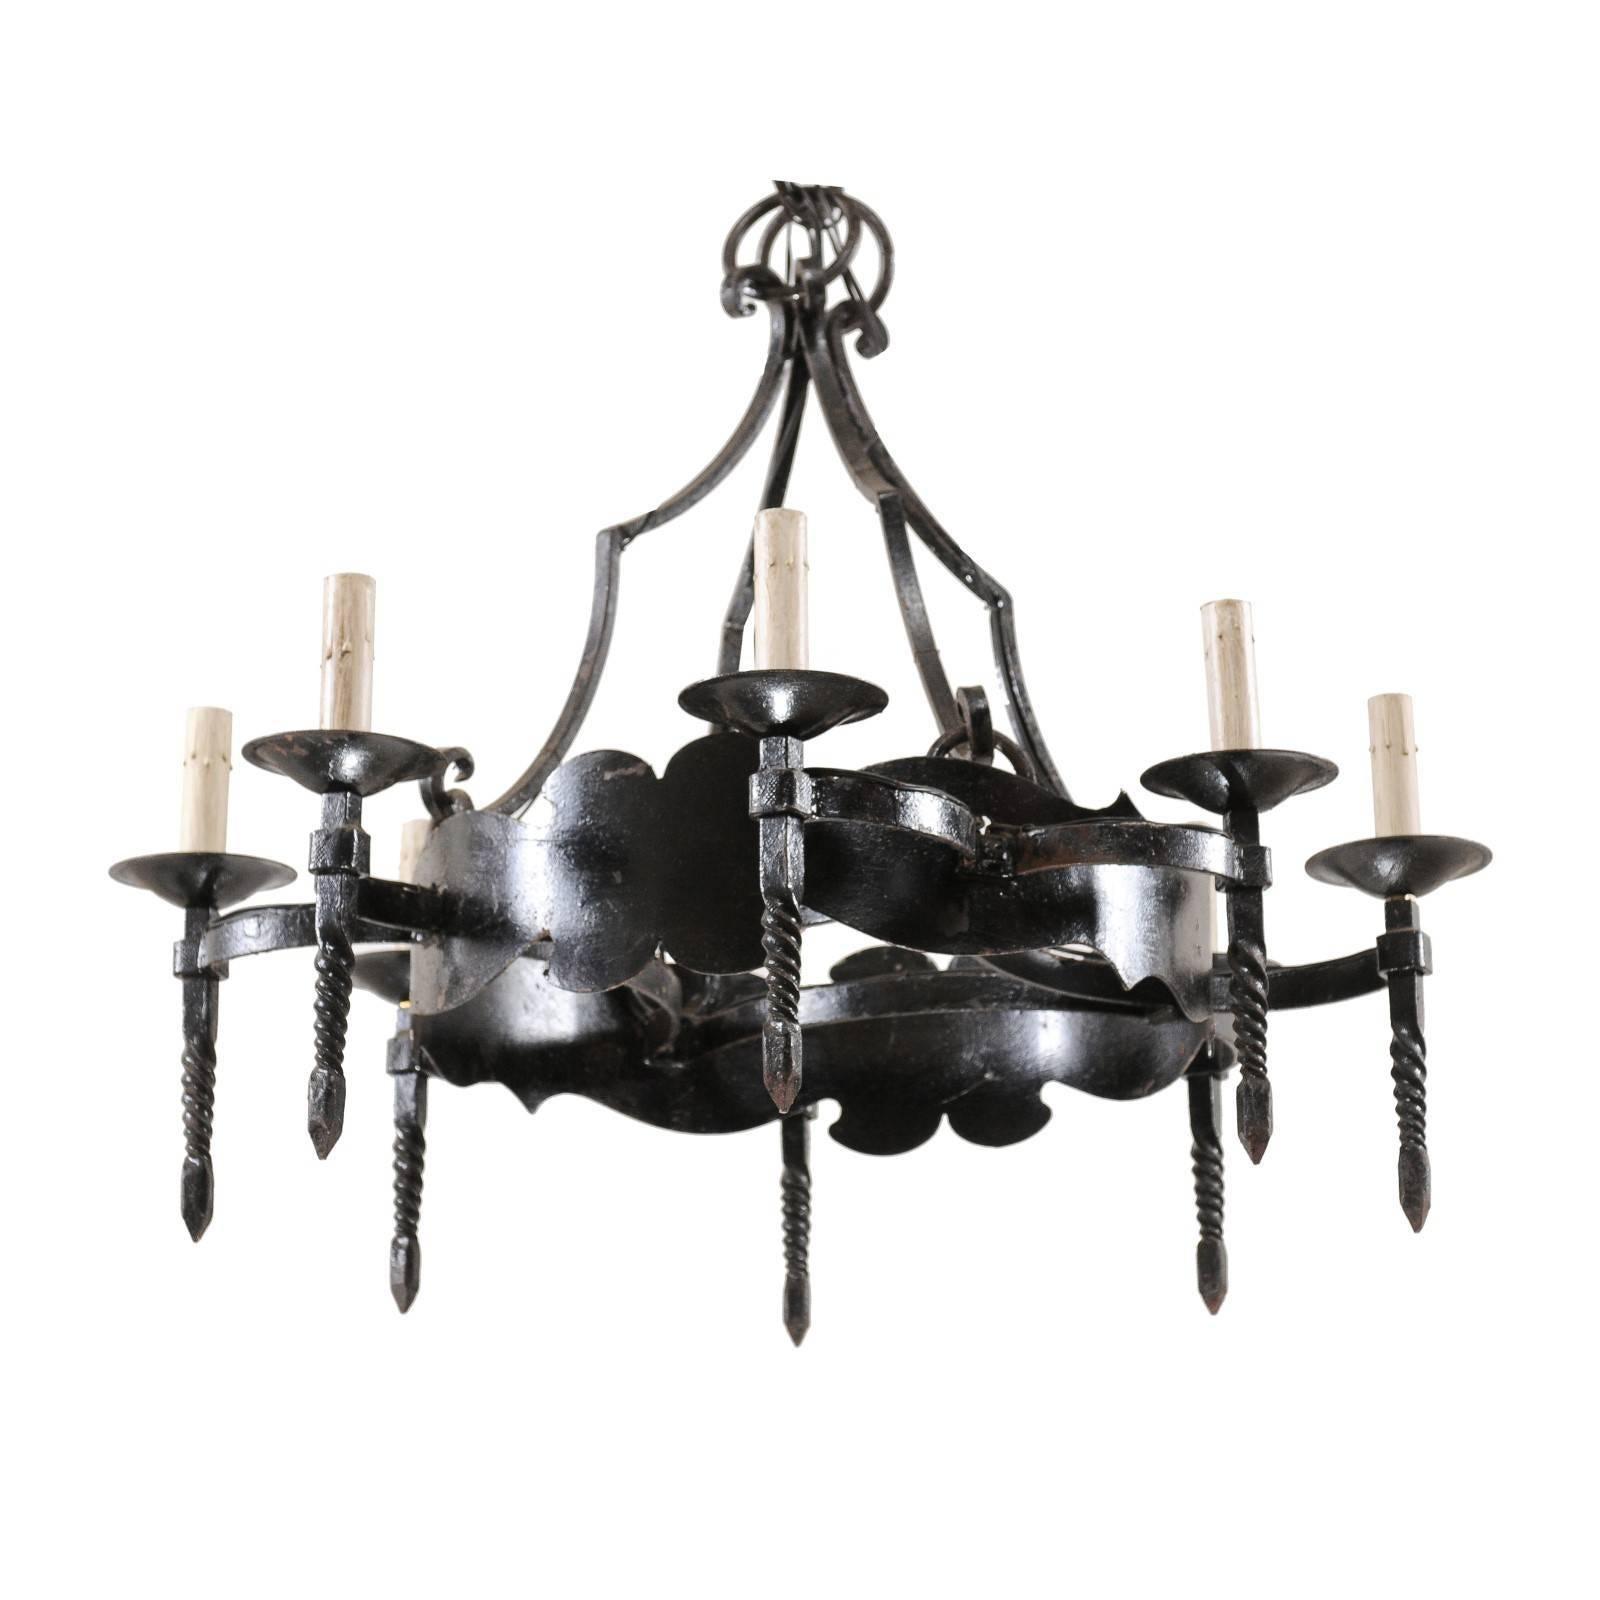 French Mid-20th Century Iron Ring Chandelier with Eight Torch-Shaped Lights